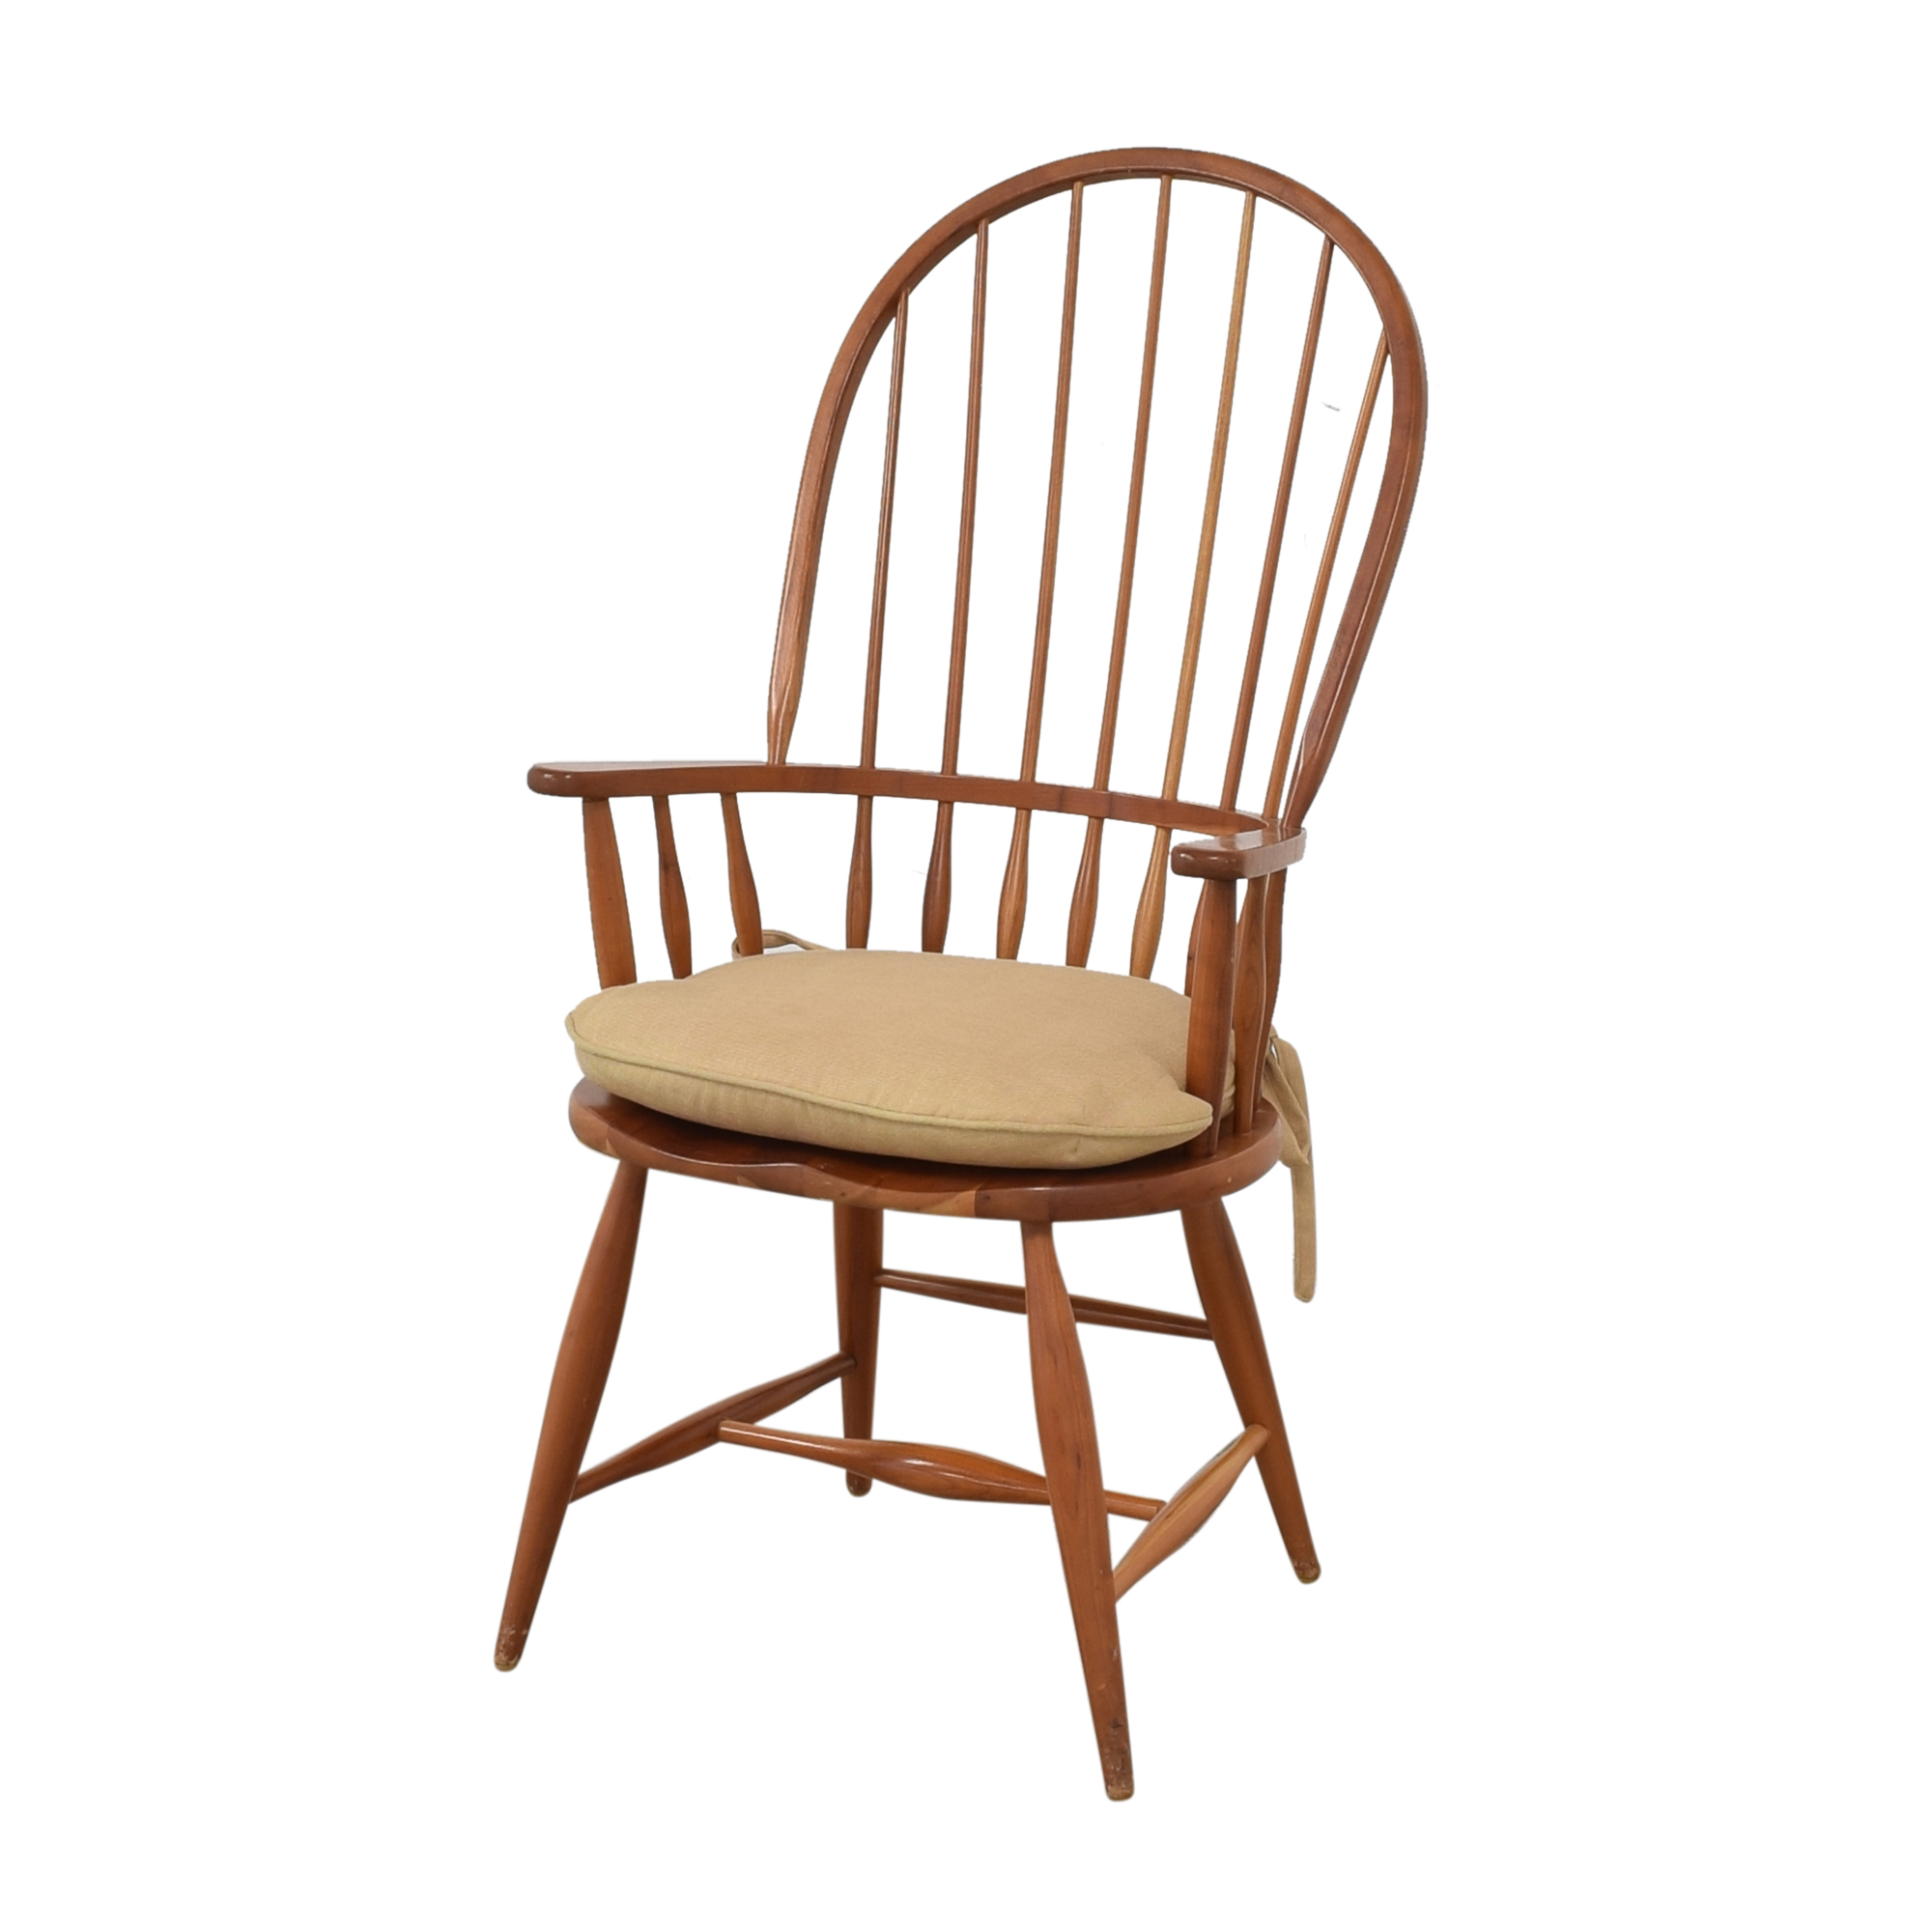 Asher Benjamin Studio Windsor Back Dining Room Chairs / Chairs